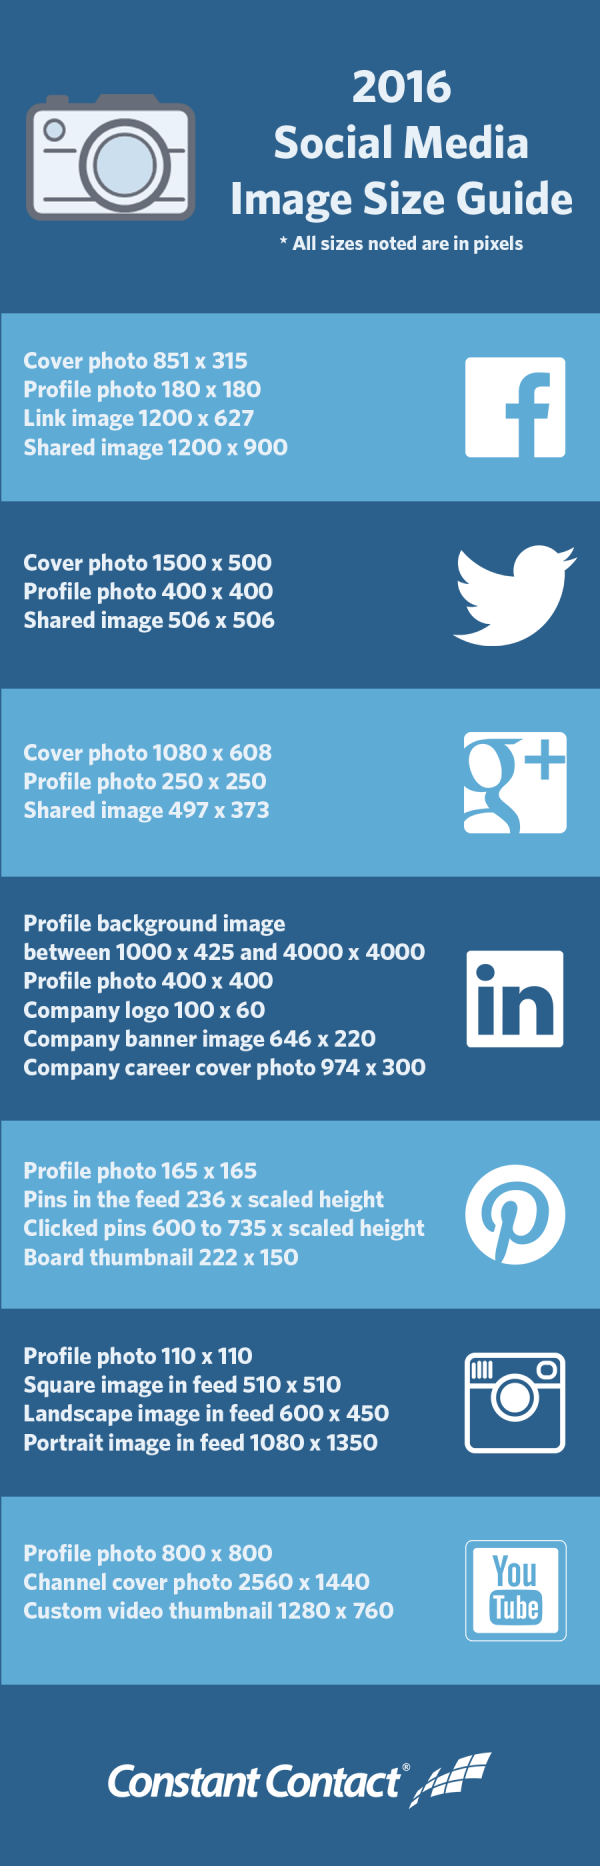 2016 Social Media Image Size Guide final